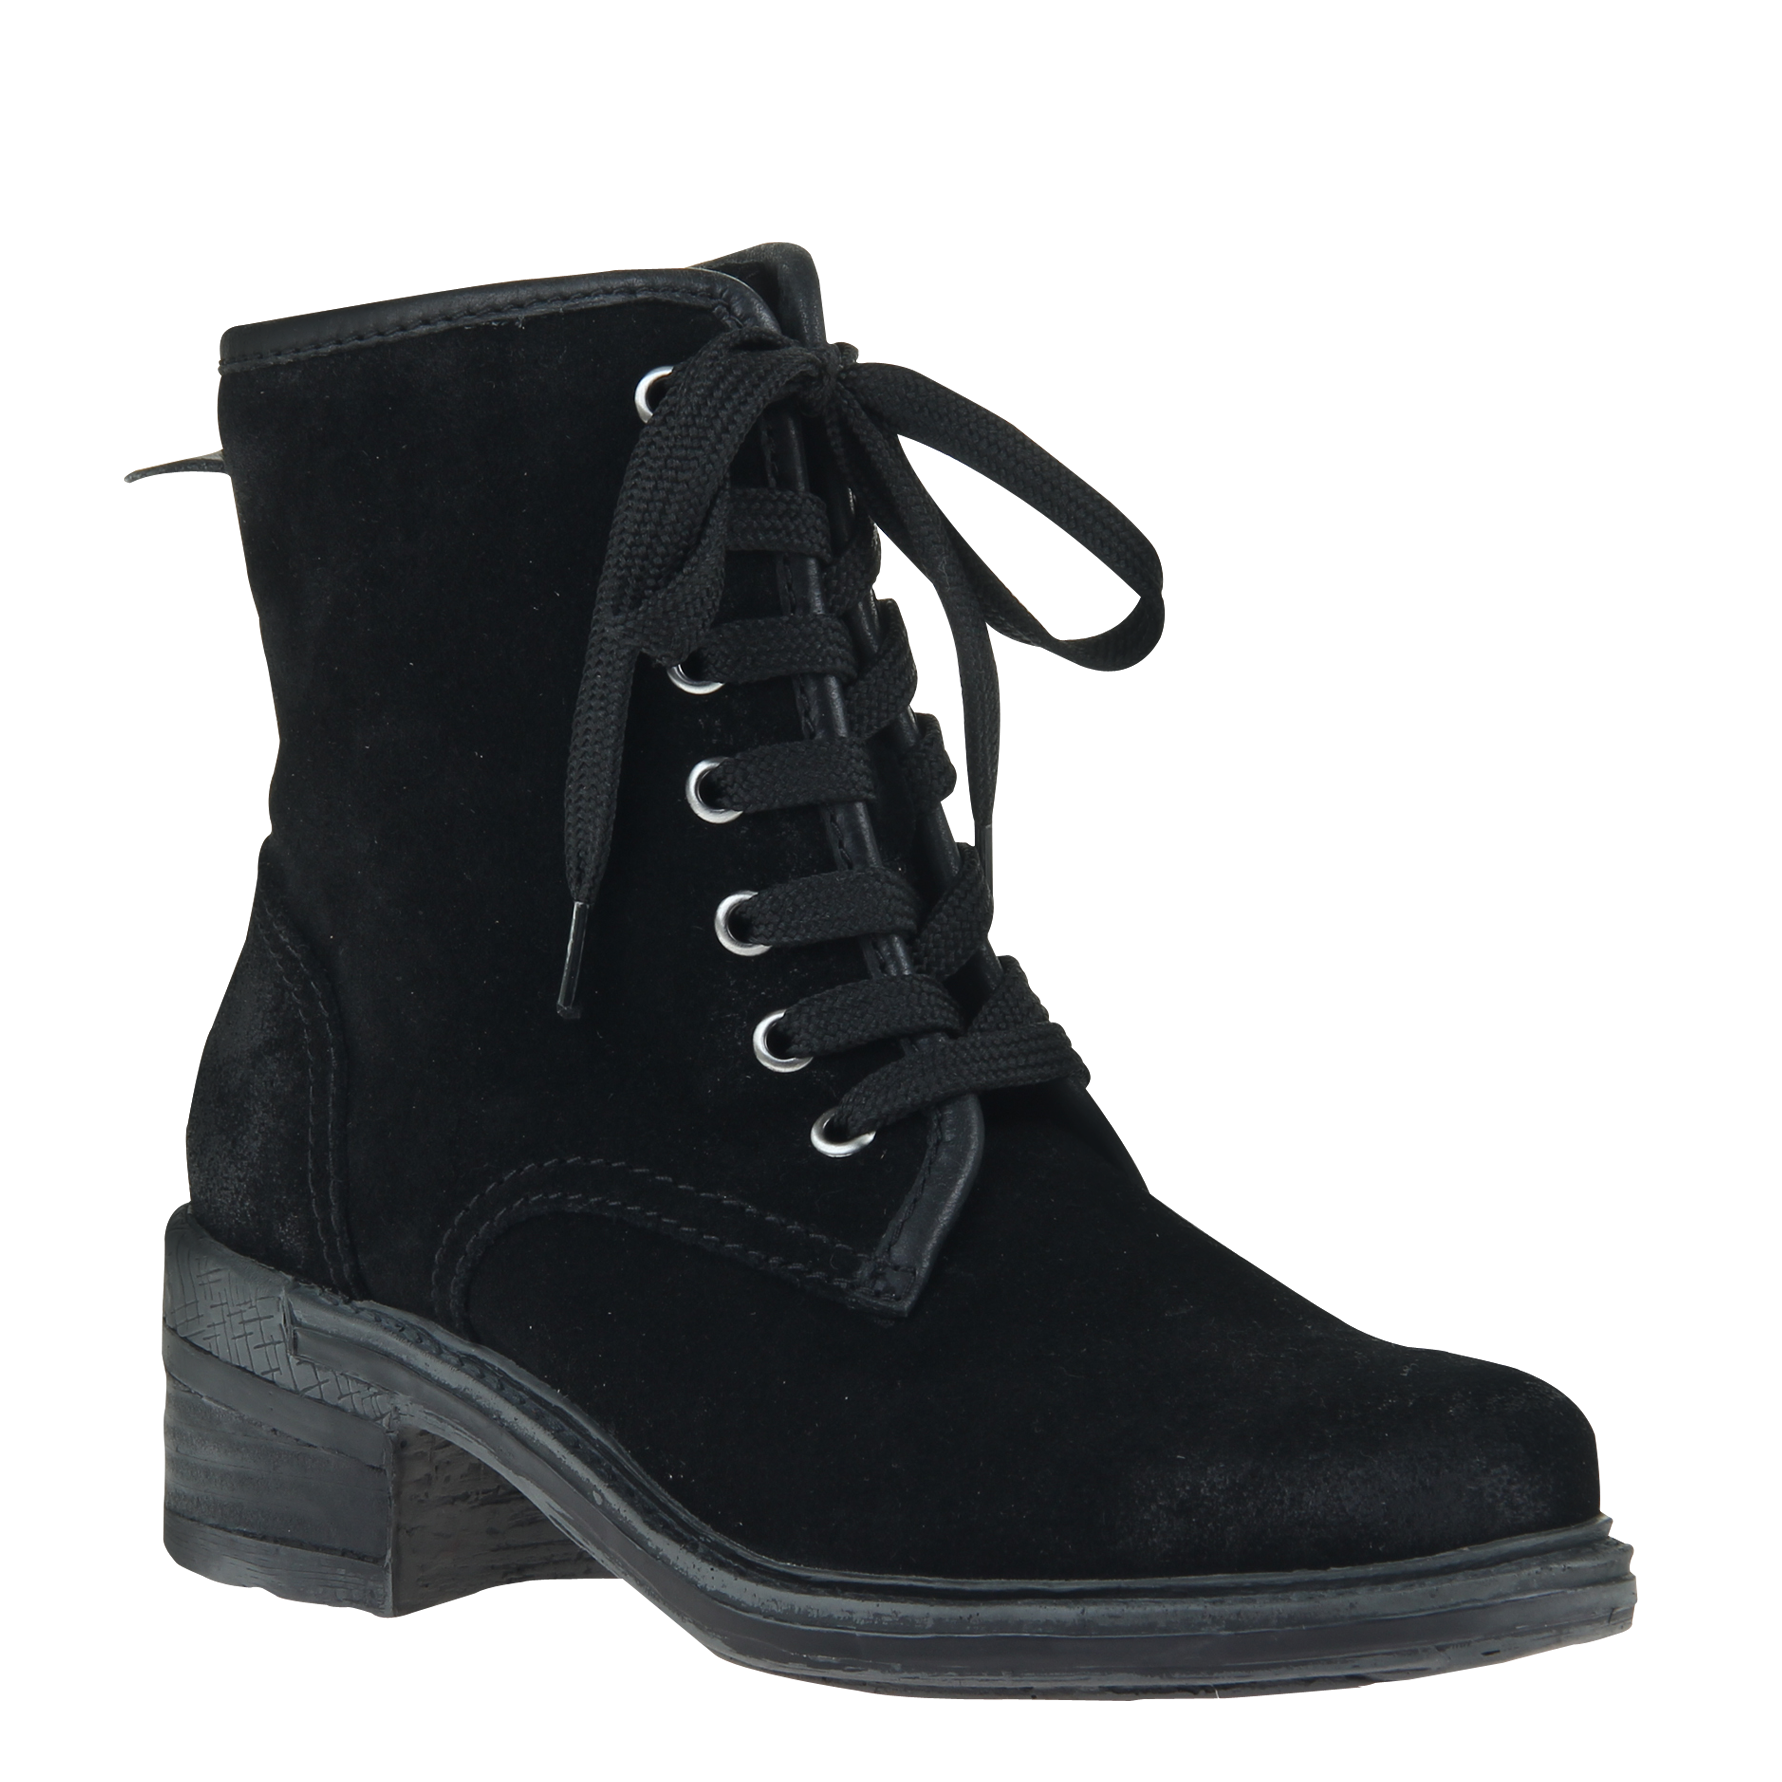 Womens ankle boot country in black